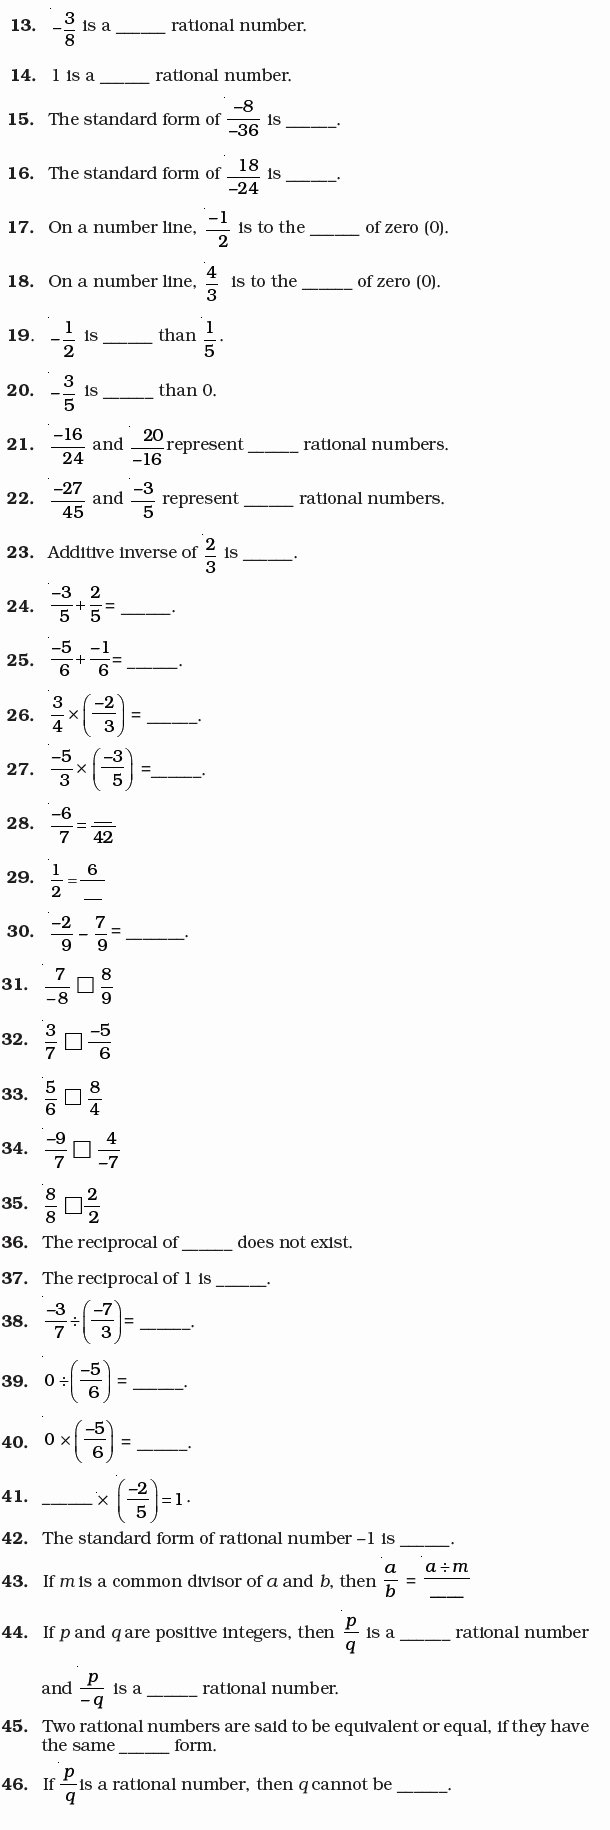 Rational Vs Irrational Numbers Worksheet New Rational Numbers Worksheet Grade 7 Pdf